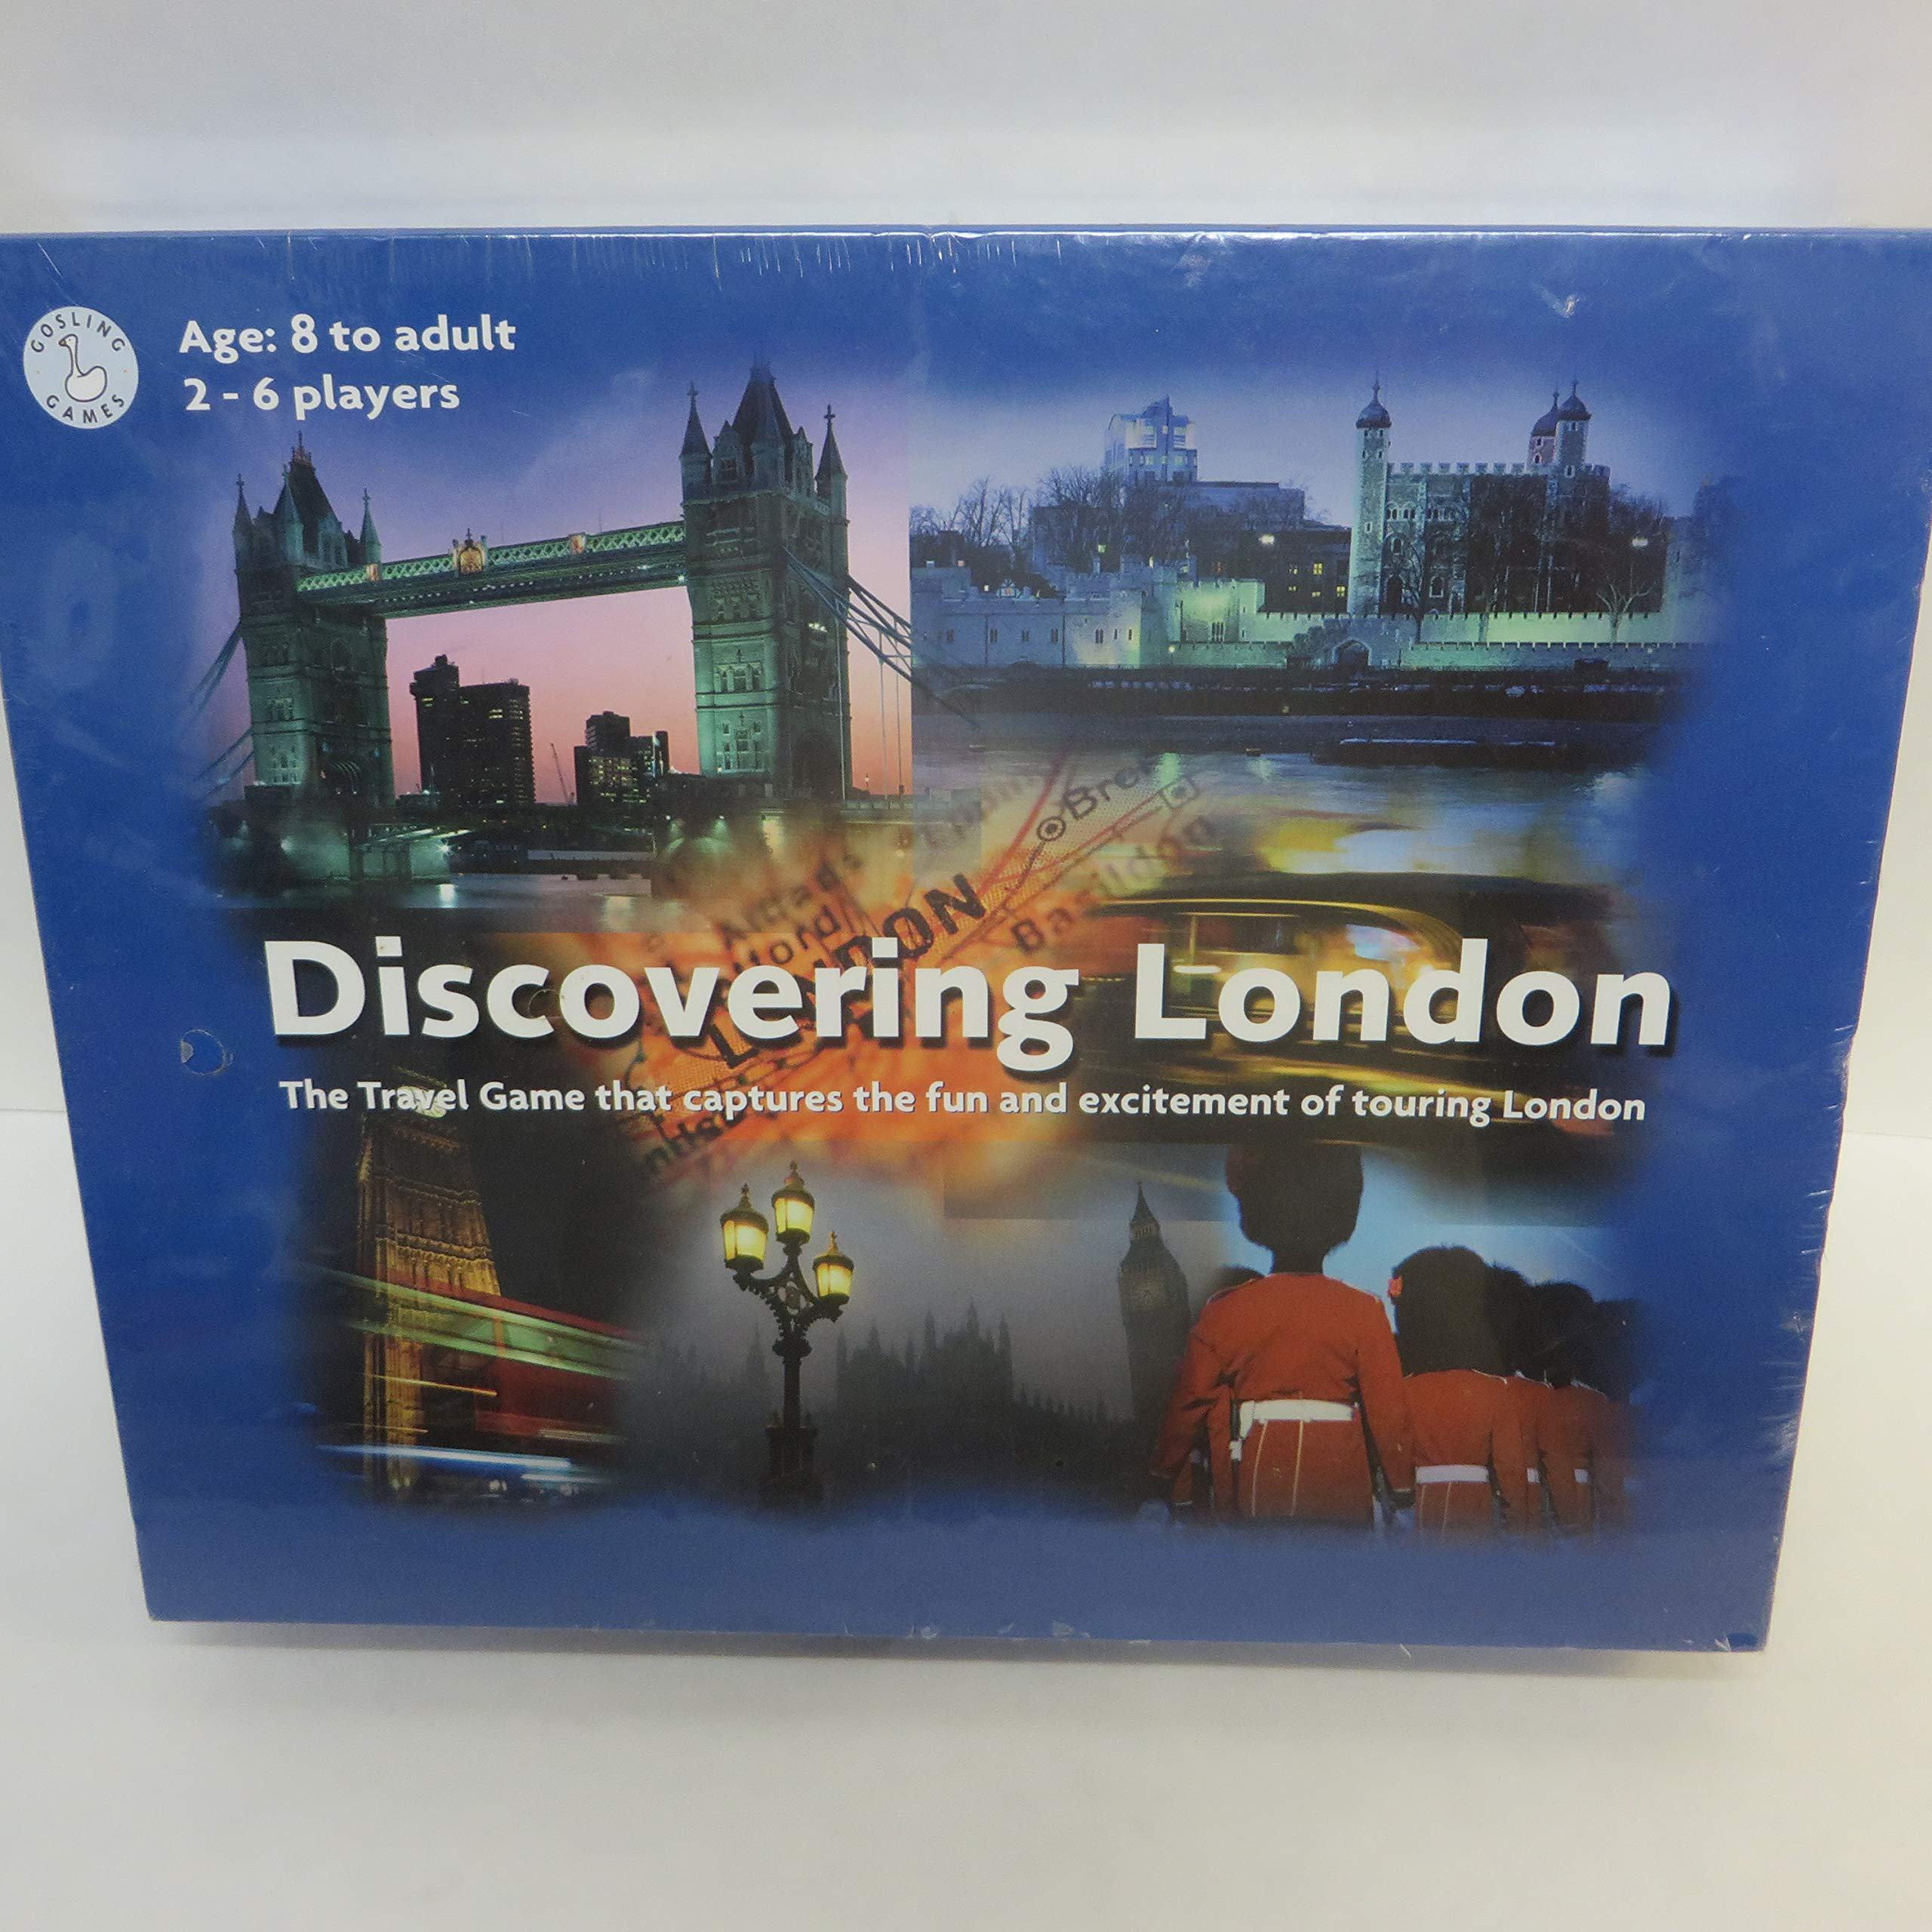 Discovering London: The Travel Game that Captures the Fun and Excitement of Touring London by Gosling Games Ltd. (Image #1)